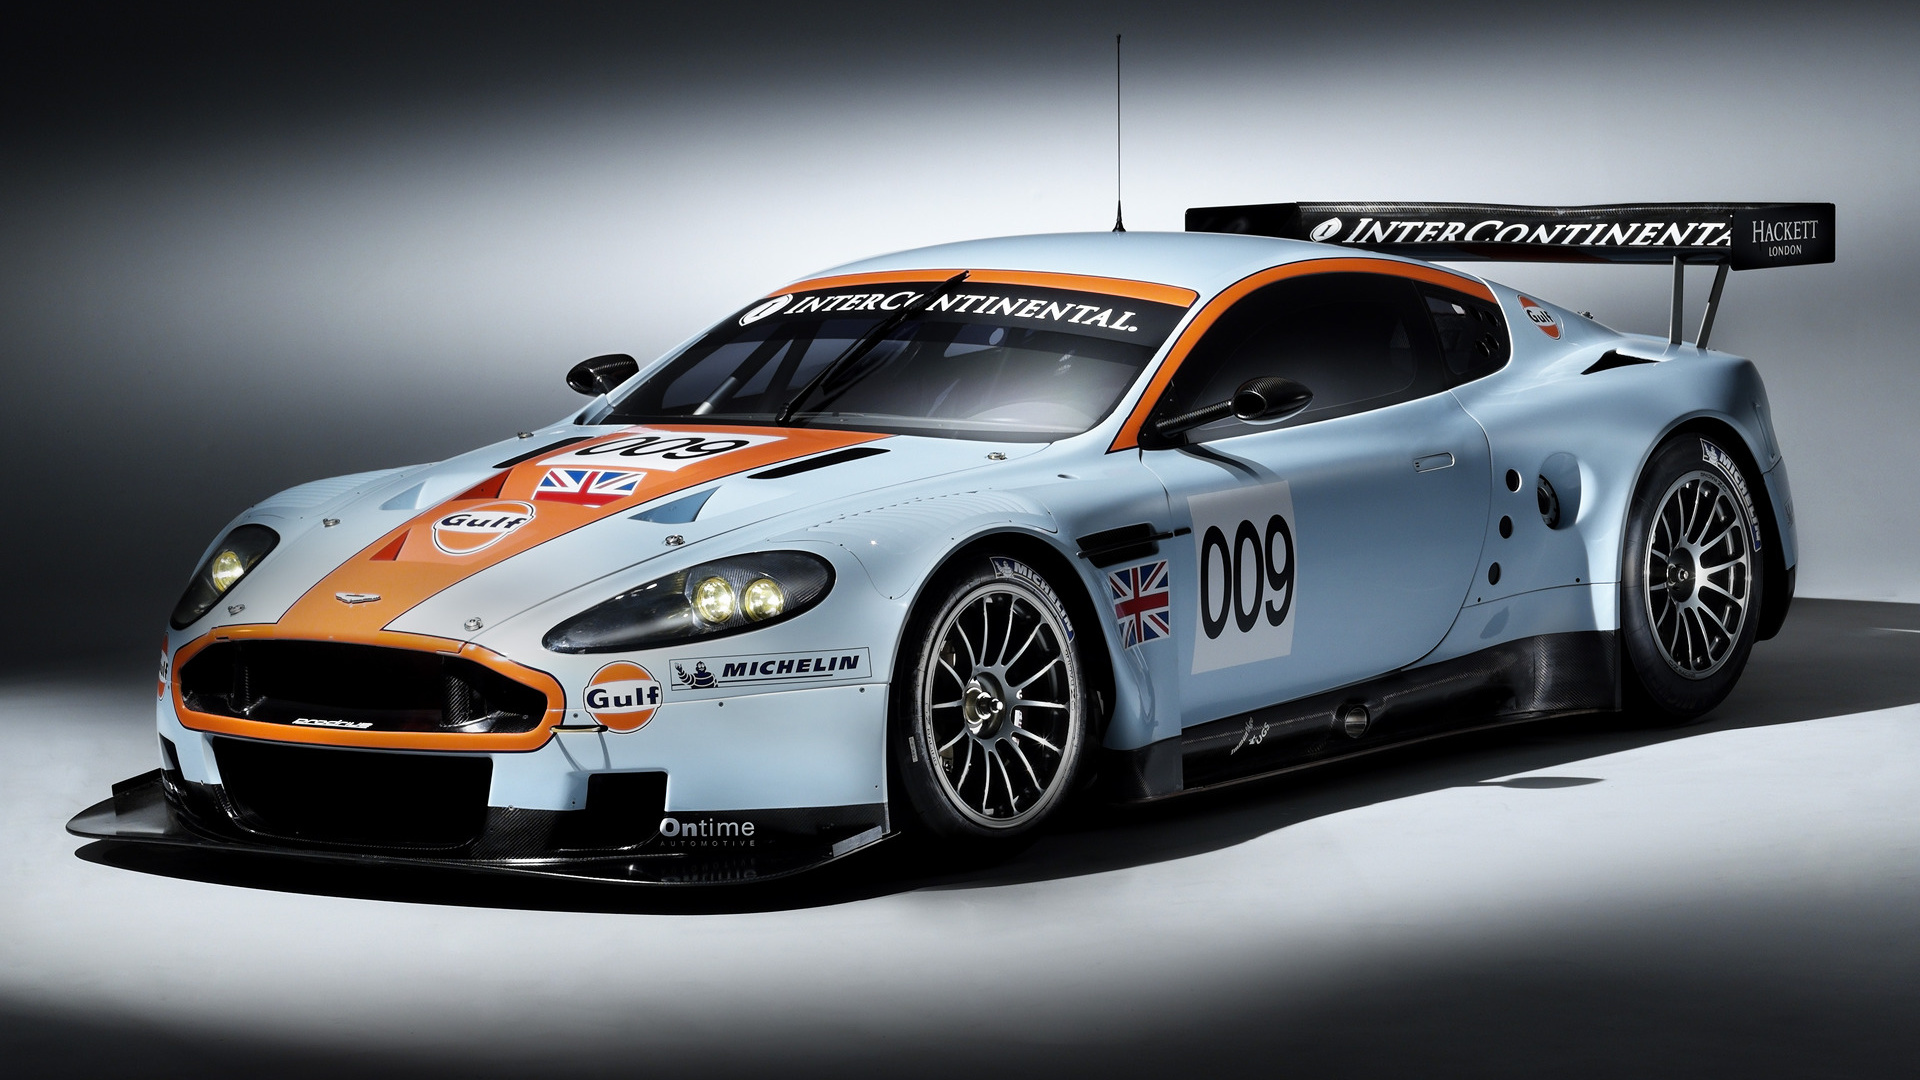 Aston Martin Dbr Gulf Oil Livery Wallpaper Hd